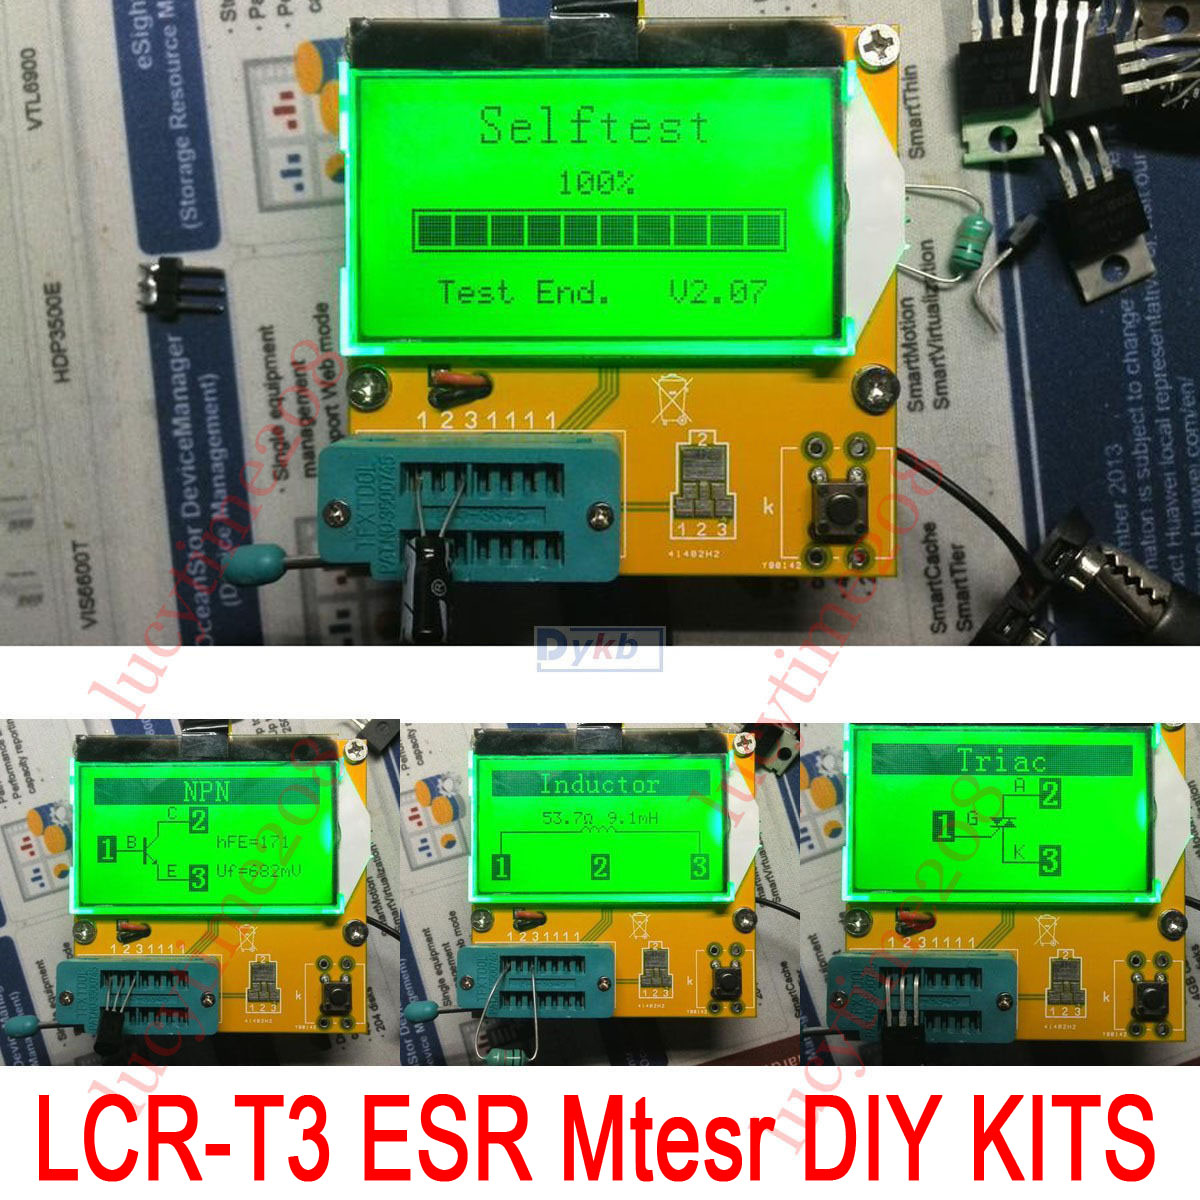 12864b Dots Matrix Graphic Lcd Display Screen For Mega328 12864 Esr Lcr Meter Usb Ab5 Sale Electroniccircuitsdiagramscom Diy Kits T3 Transistor Tester Diode Triode Capacitor Inductance Resistor